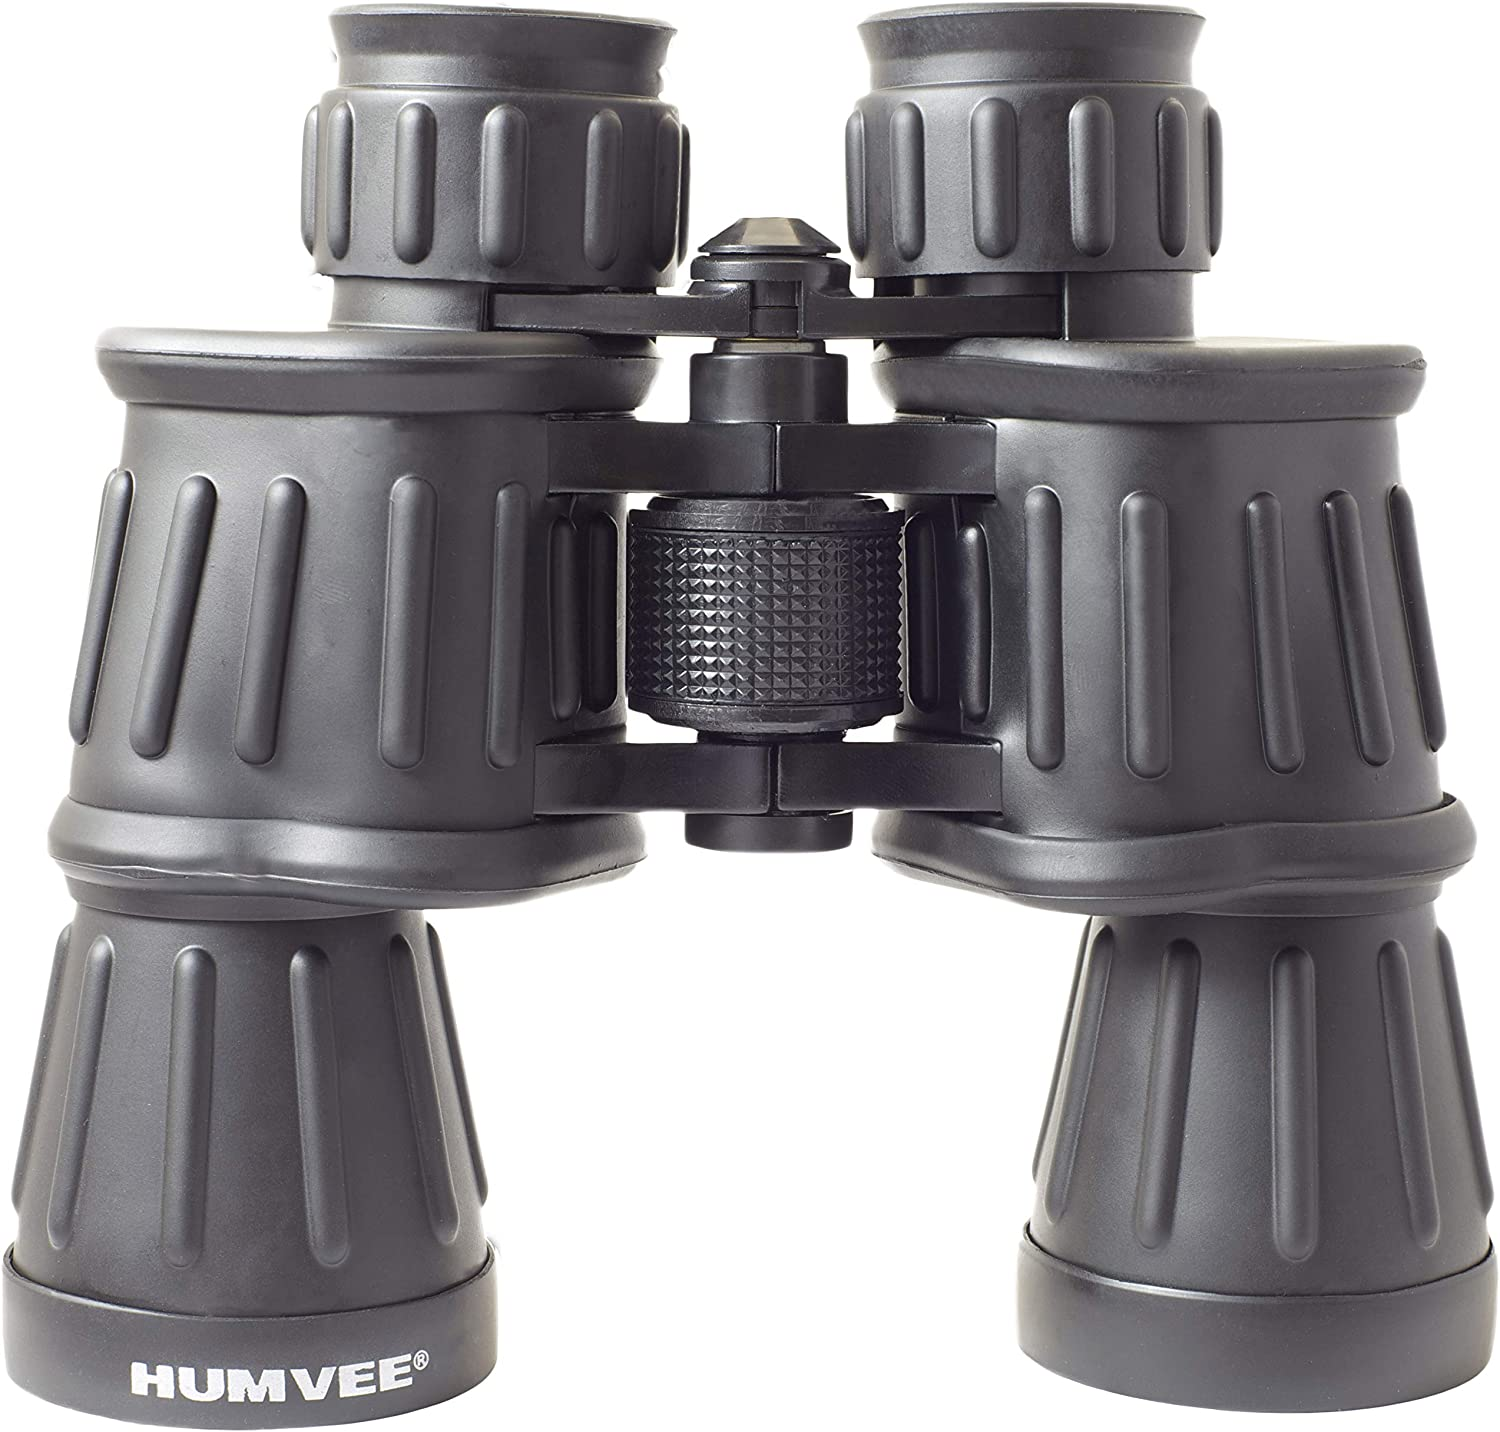 Humvee 20x50 Field Seattle Mall Binocular Rubber Color - Max 51% OFF Green Coated